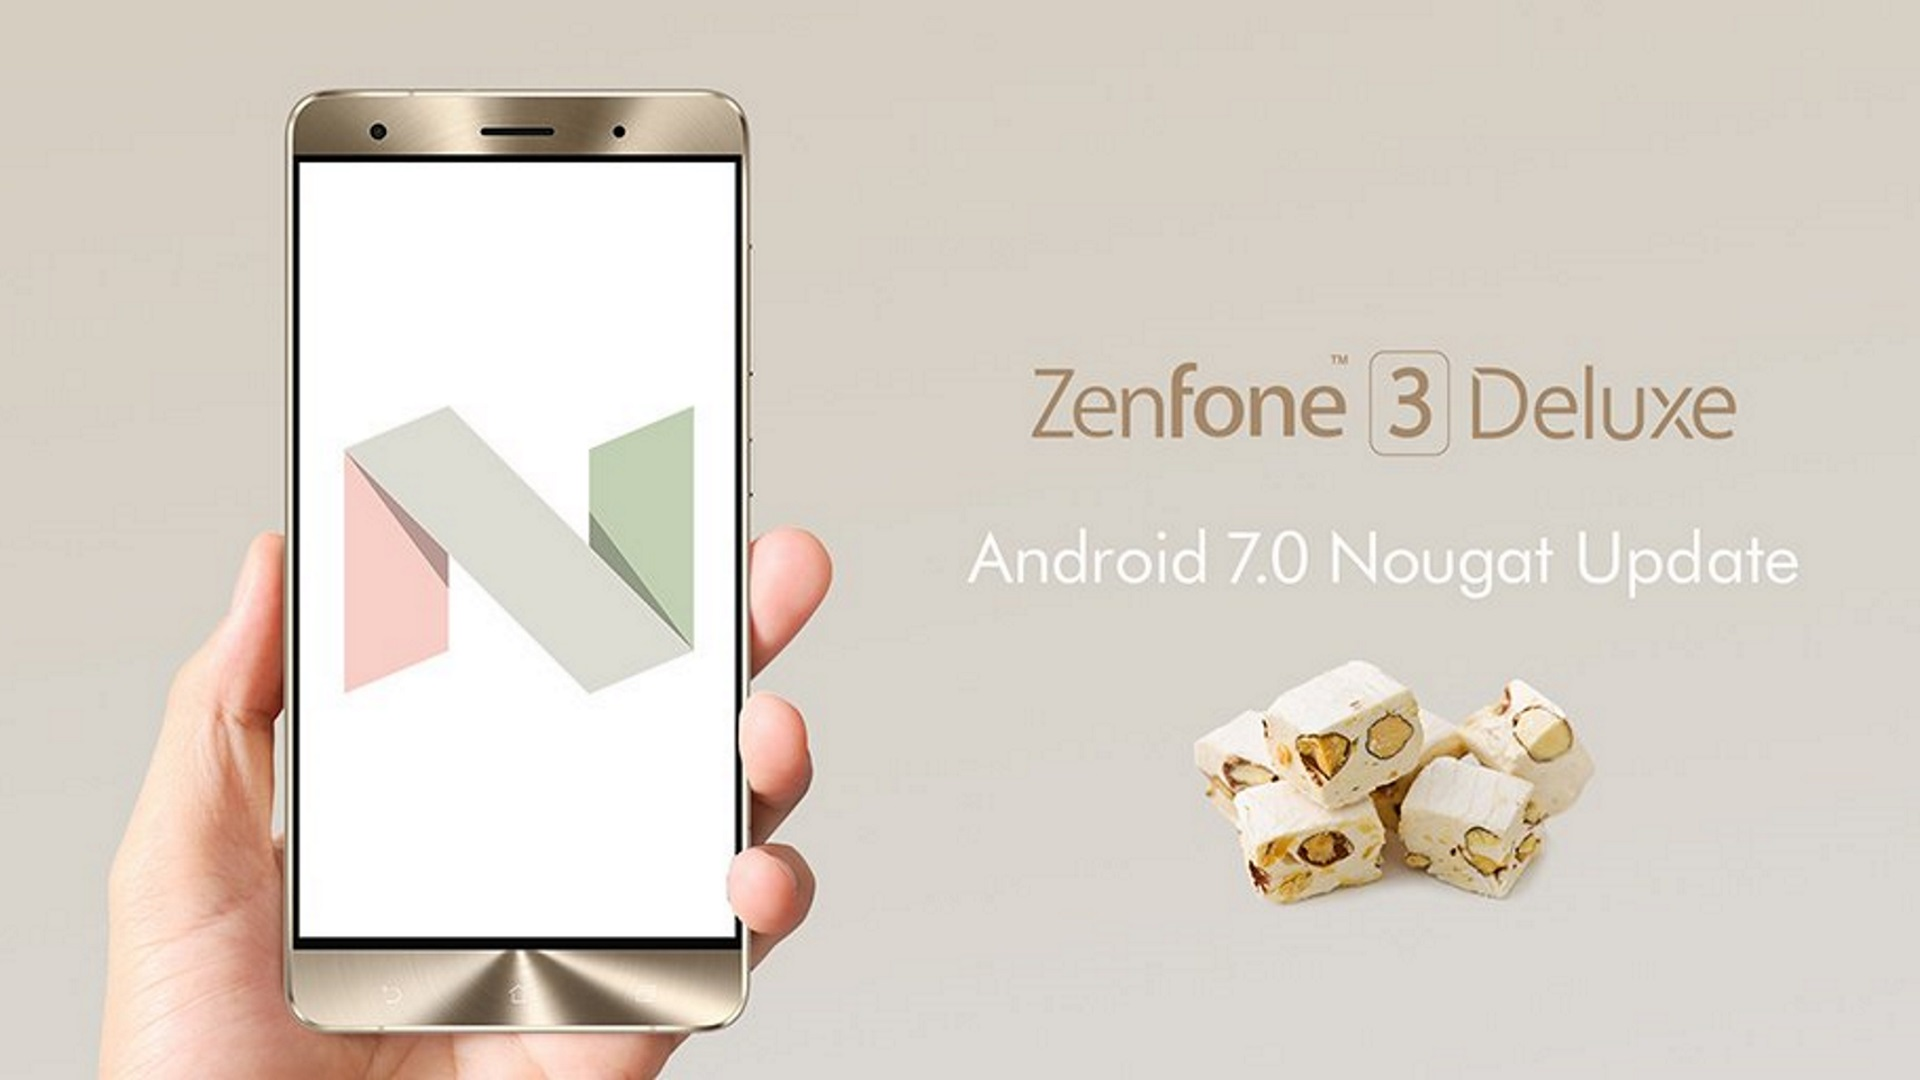 「ZenFone 3 Deluxe(ZS570KL)」のAndroid 7.0アップデート、7月3日開始【追記】